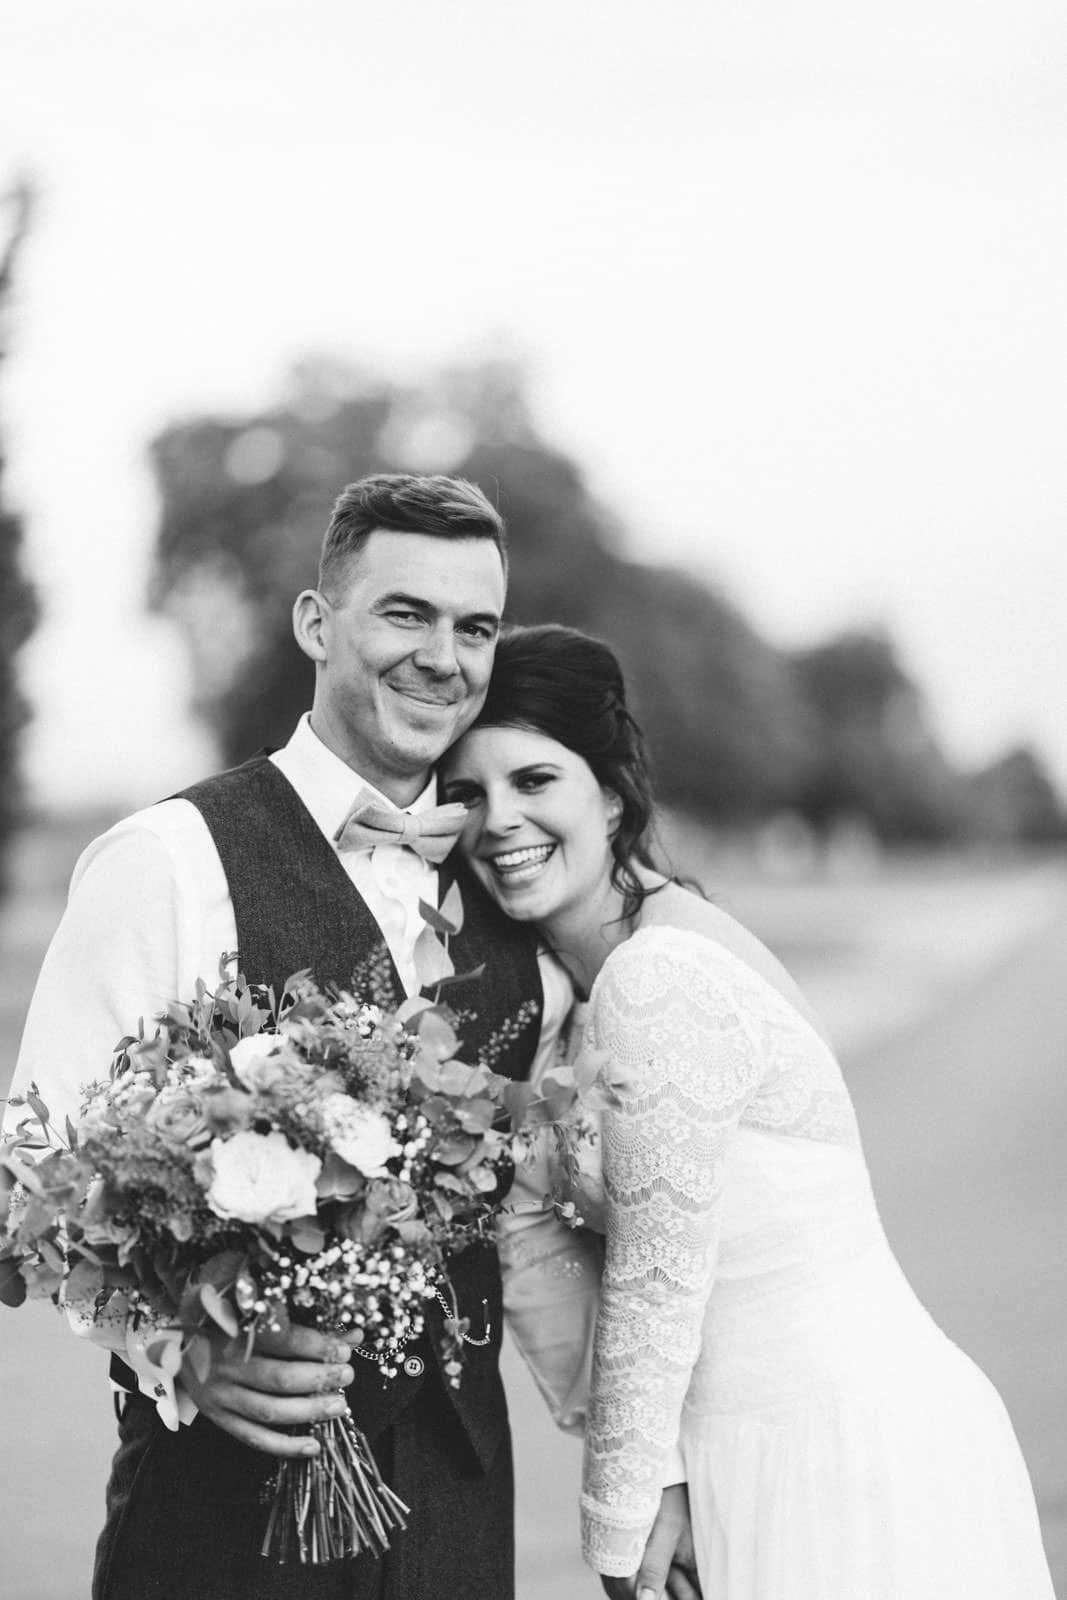 Newly married couple smiling at the camera at bassmead manor wedding venue